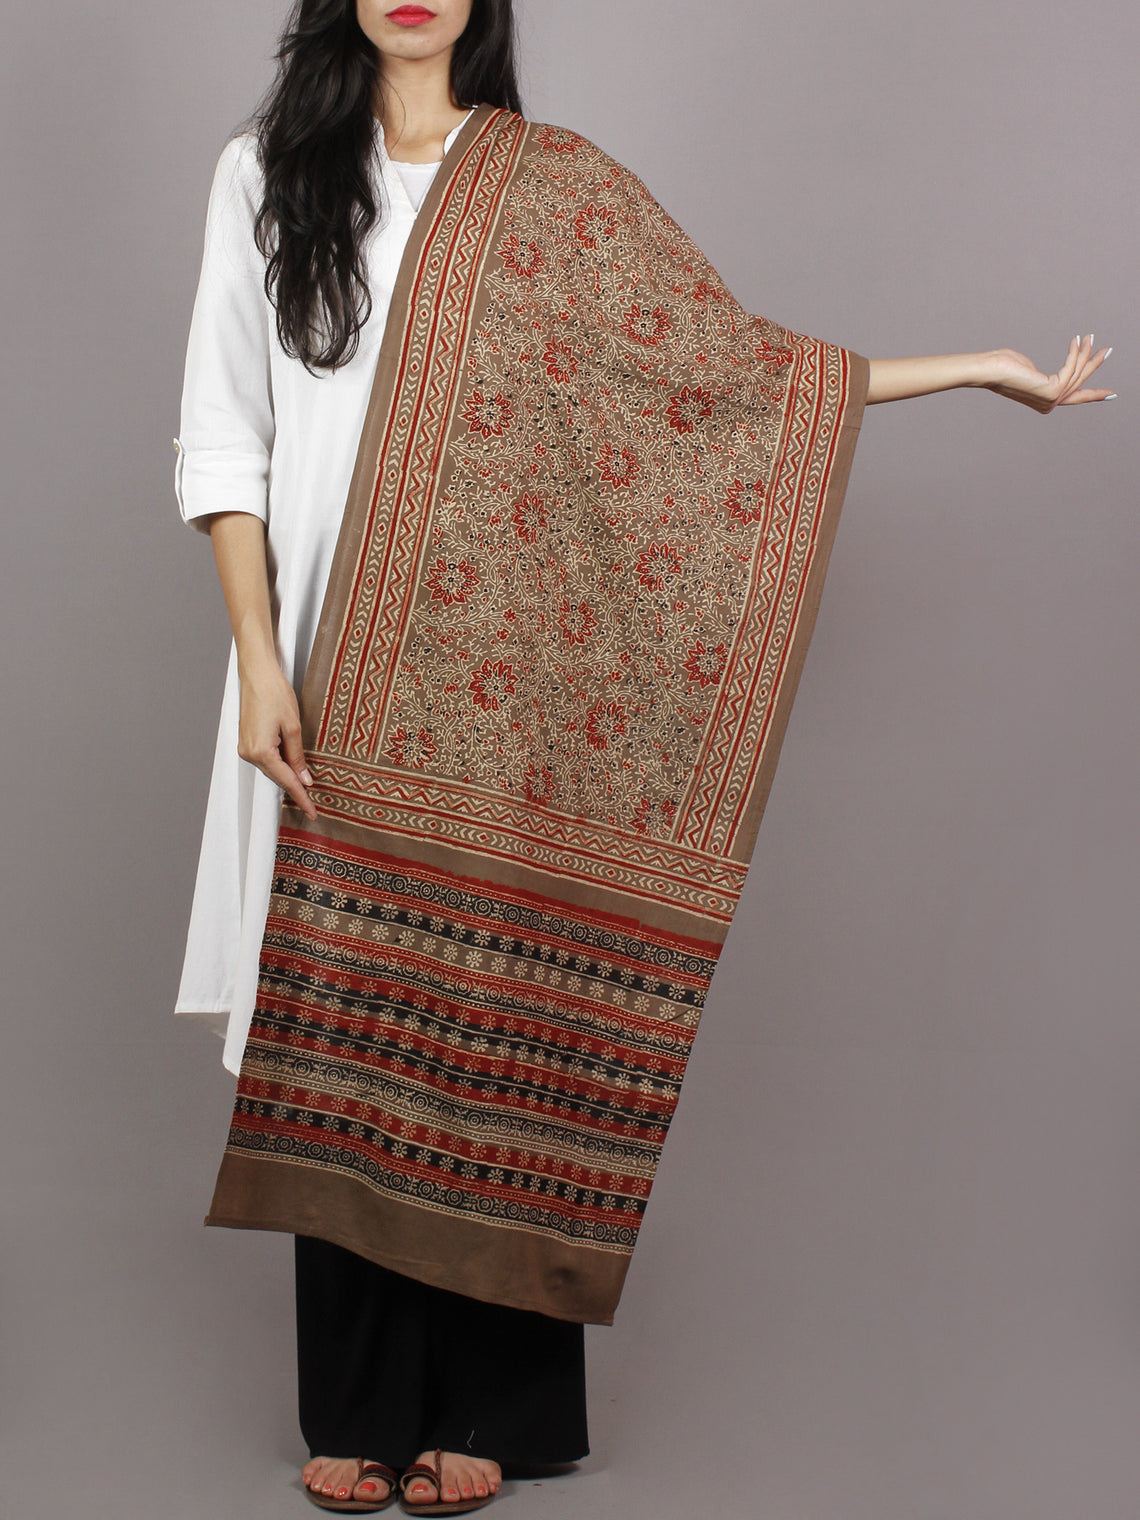 Brown Beige Maroon Black Mughal Nakashi Ajrakh Hand Block Printed Cotton Stole - S63170136